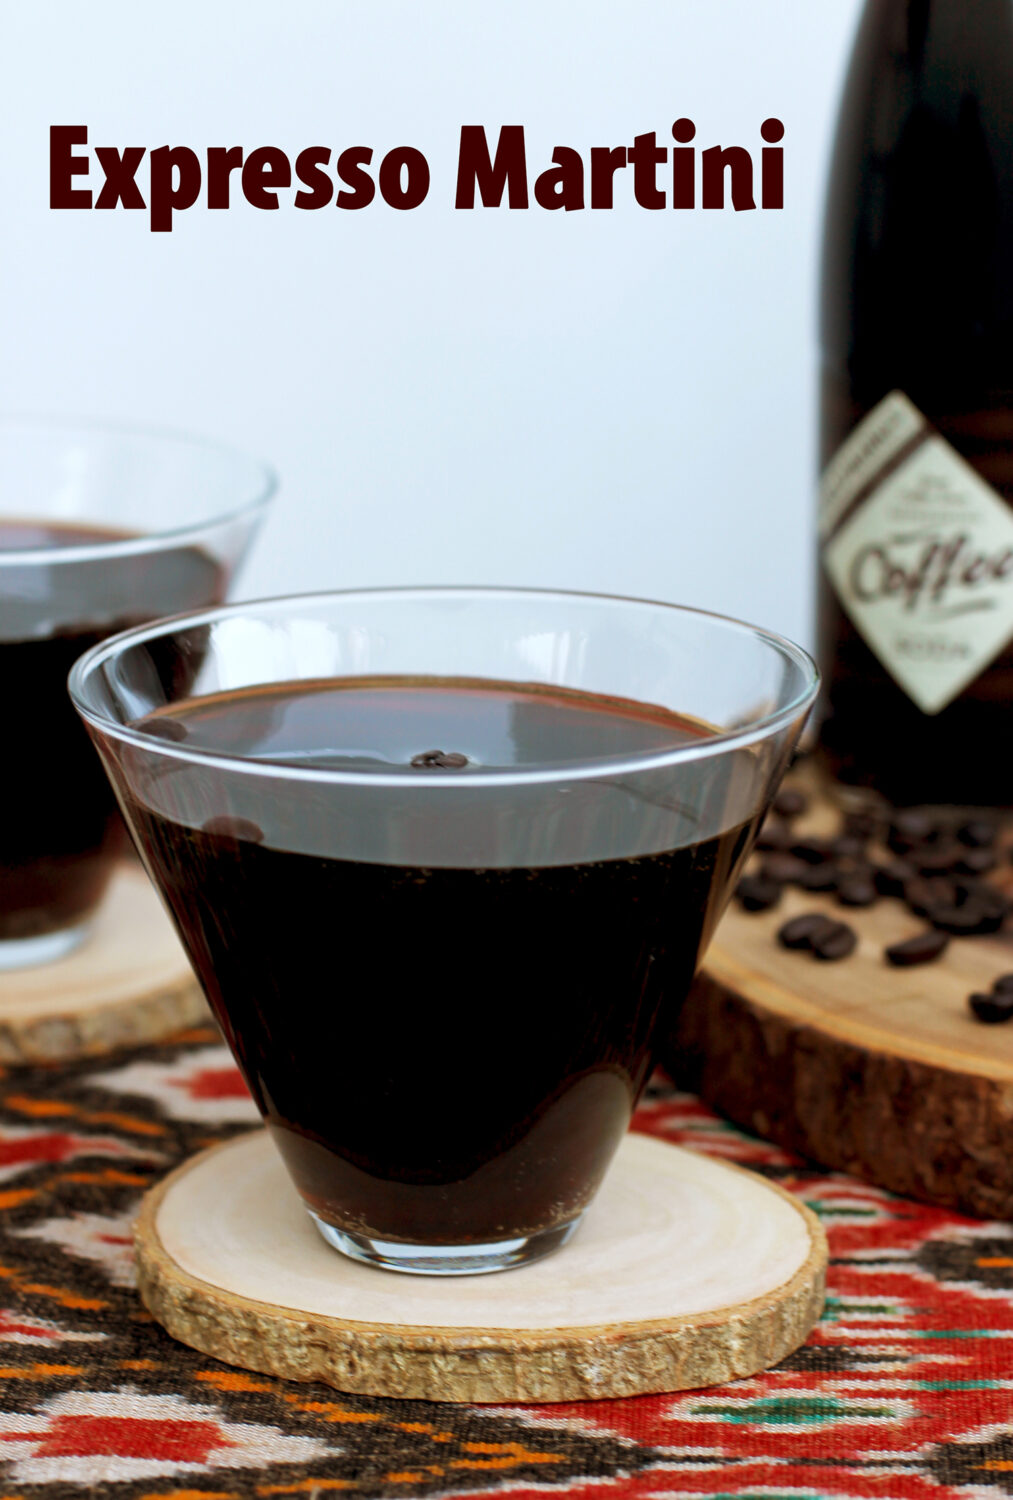 This expresso martini is the perfect after dinner cocktail? Garnished with Italian expresso beans, it's light and refreshing!